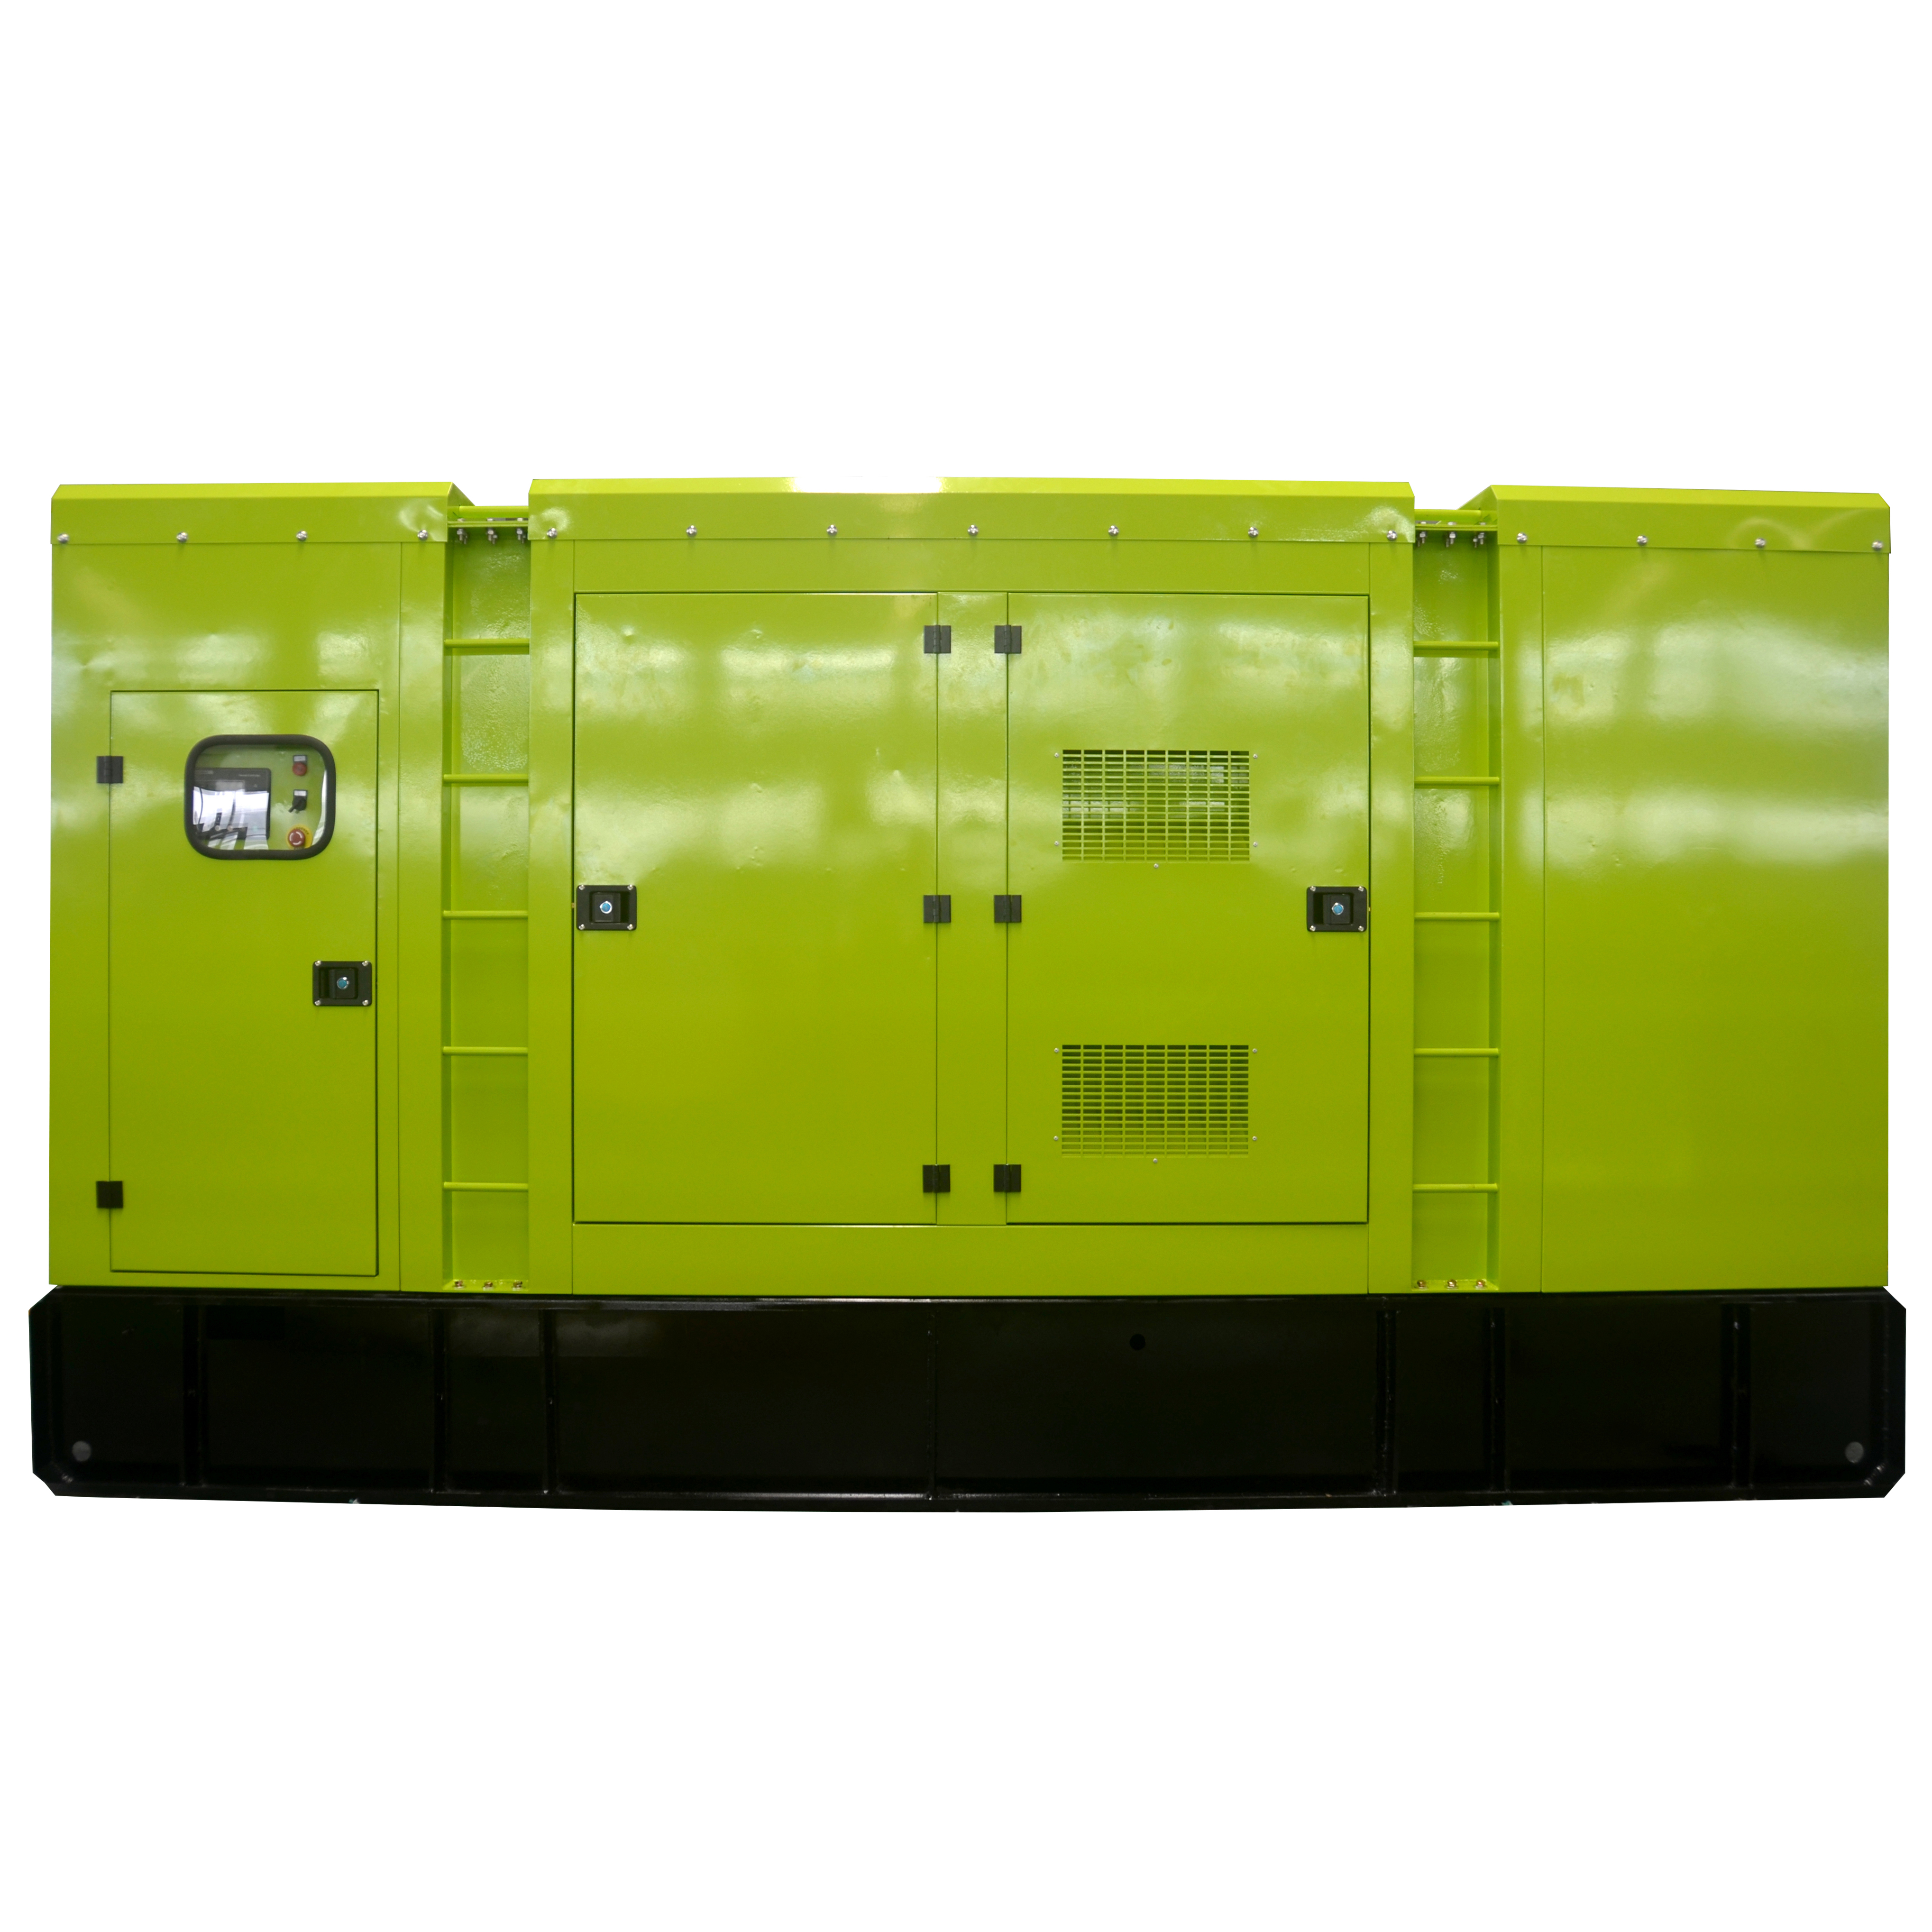 famous brand 700kva cummins <strong>diesel</strong> generator set factory price